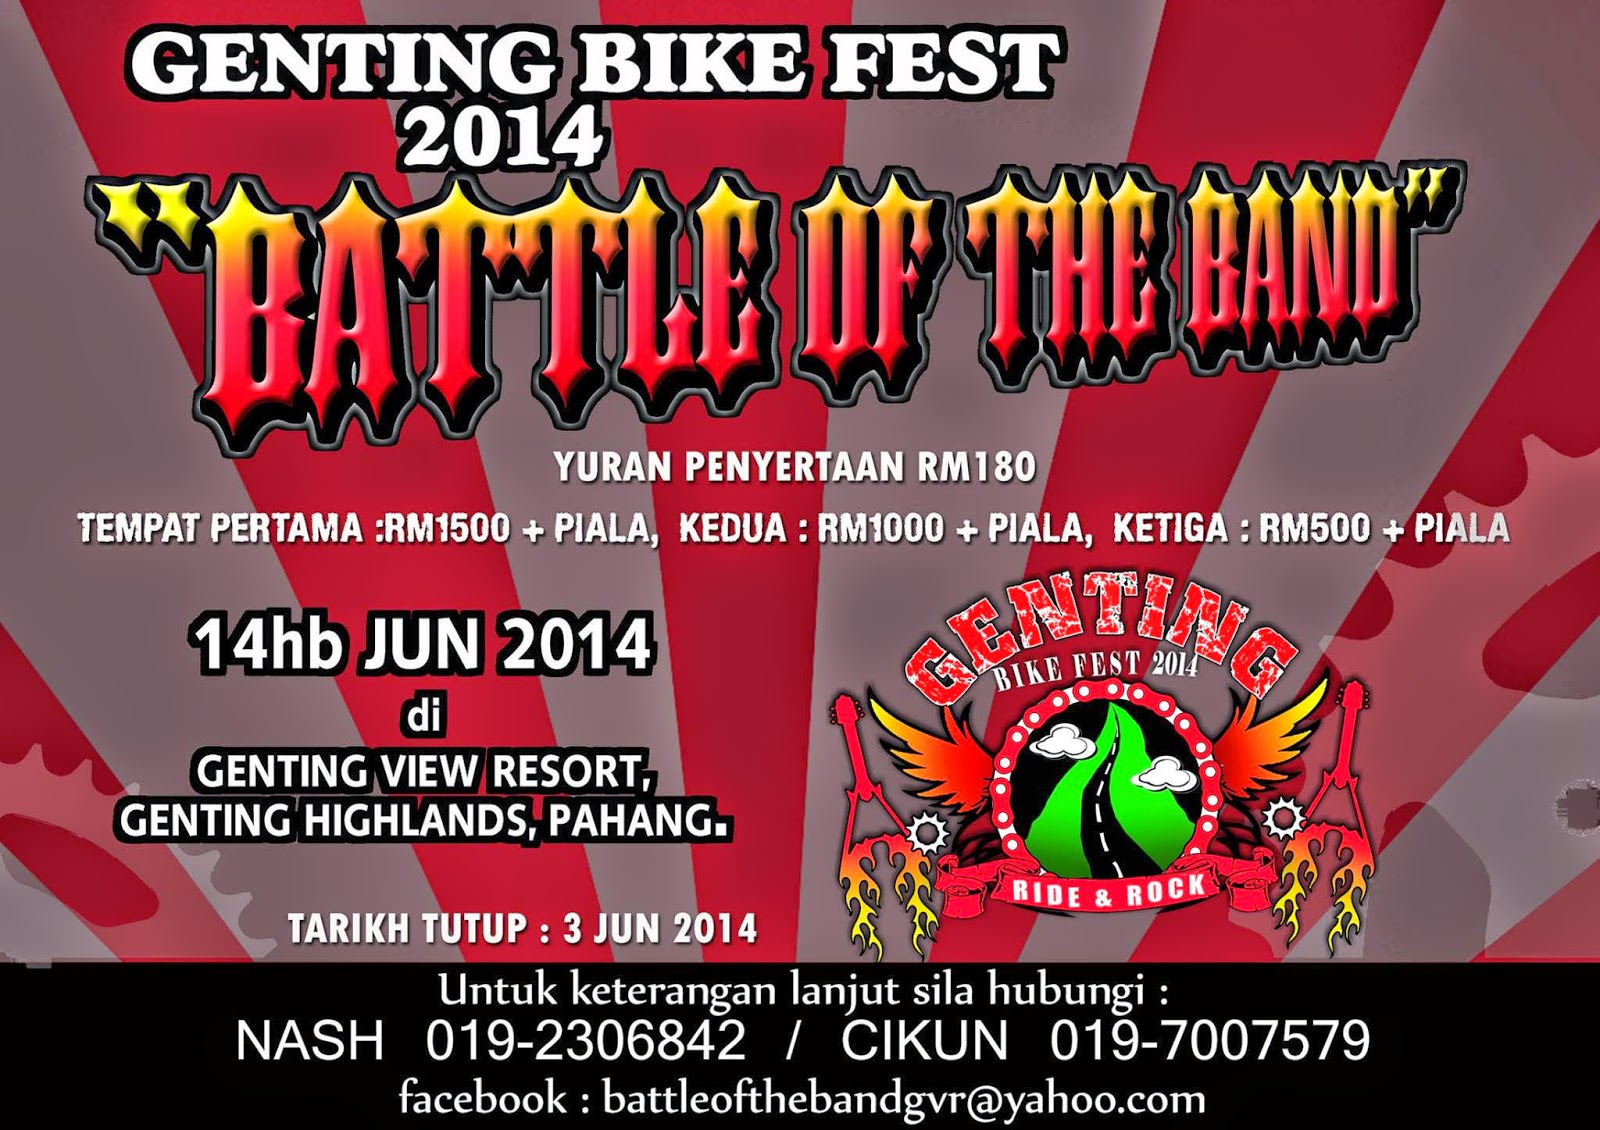 Event: Battle Of The Band Genting Bike Fest 2014